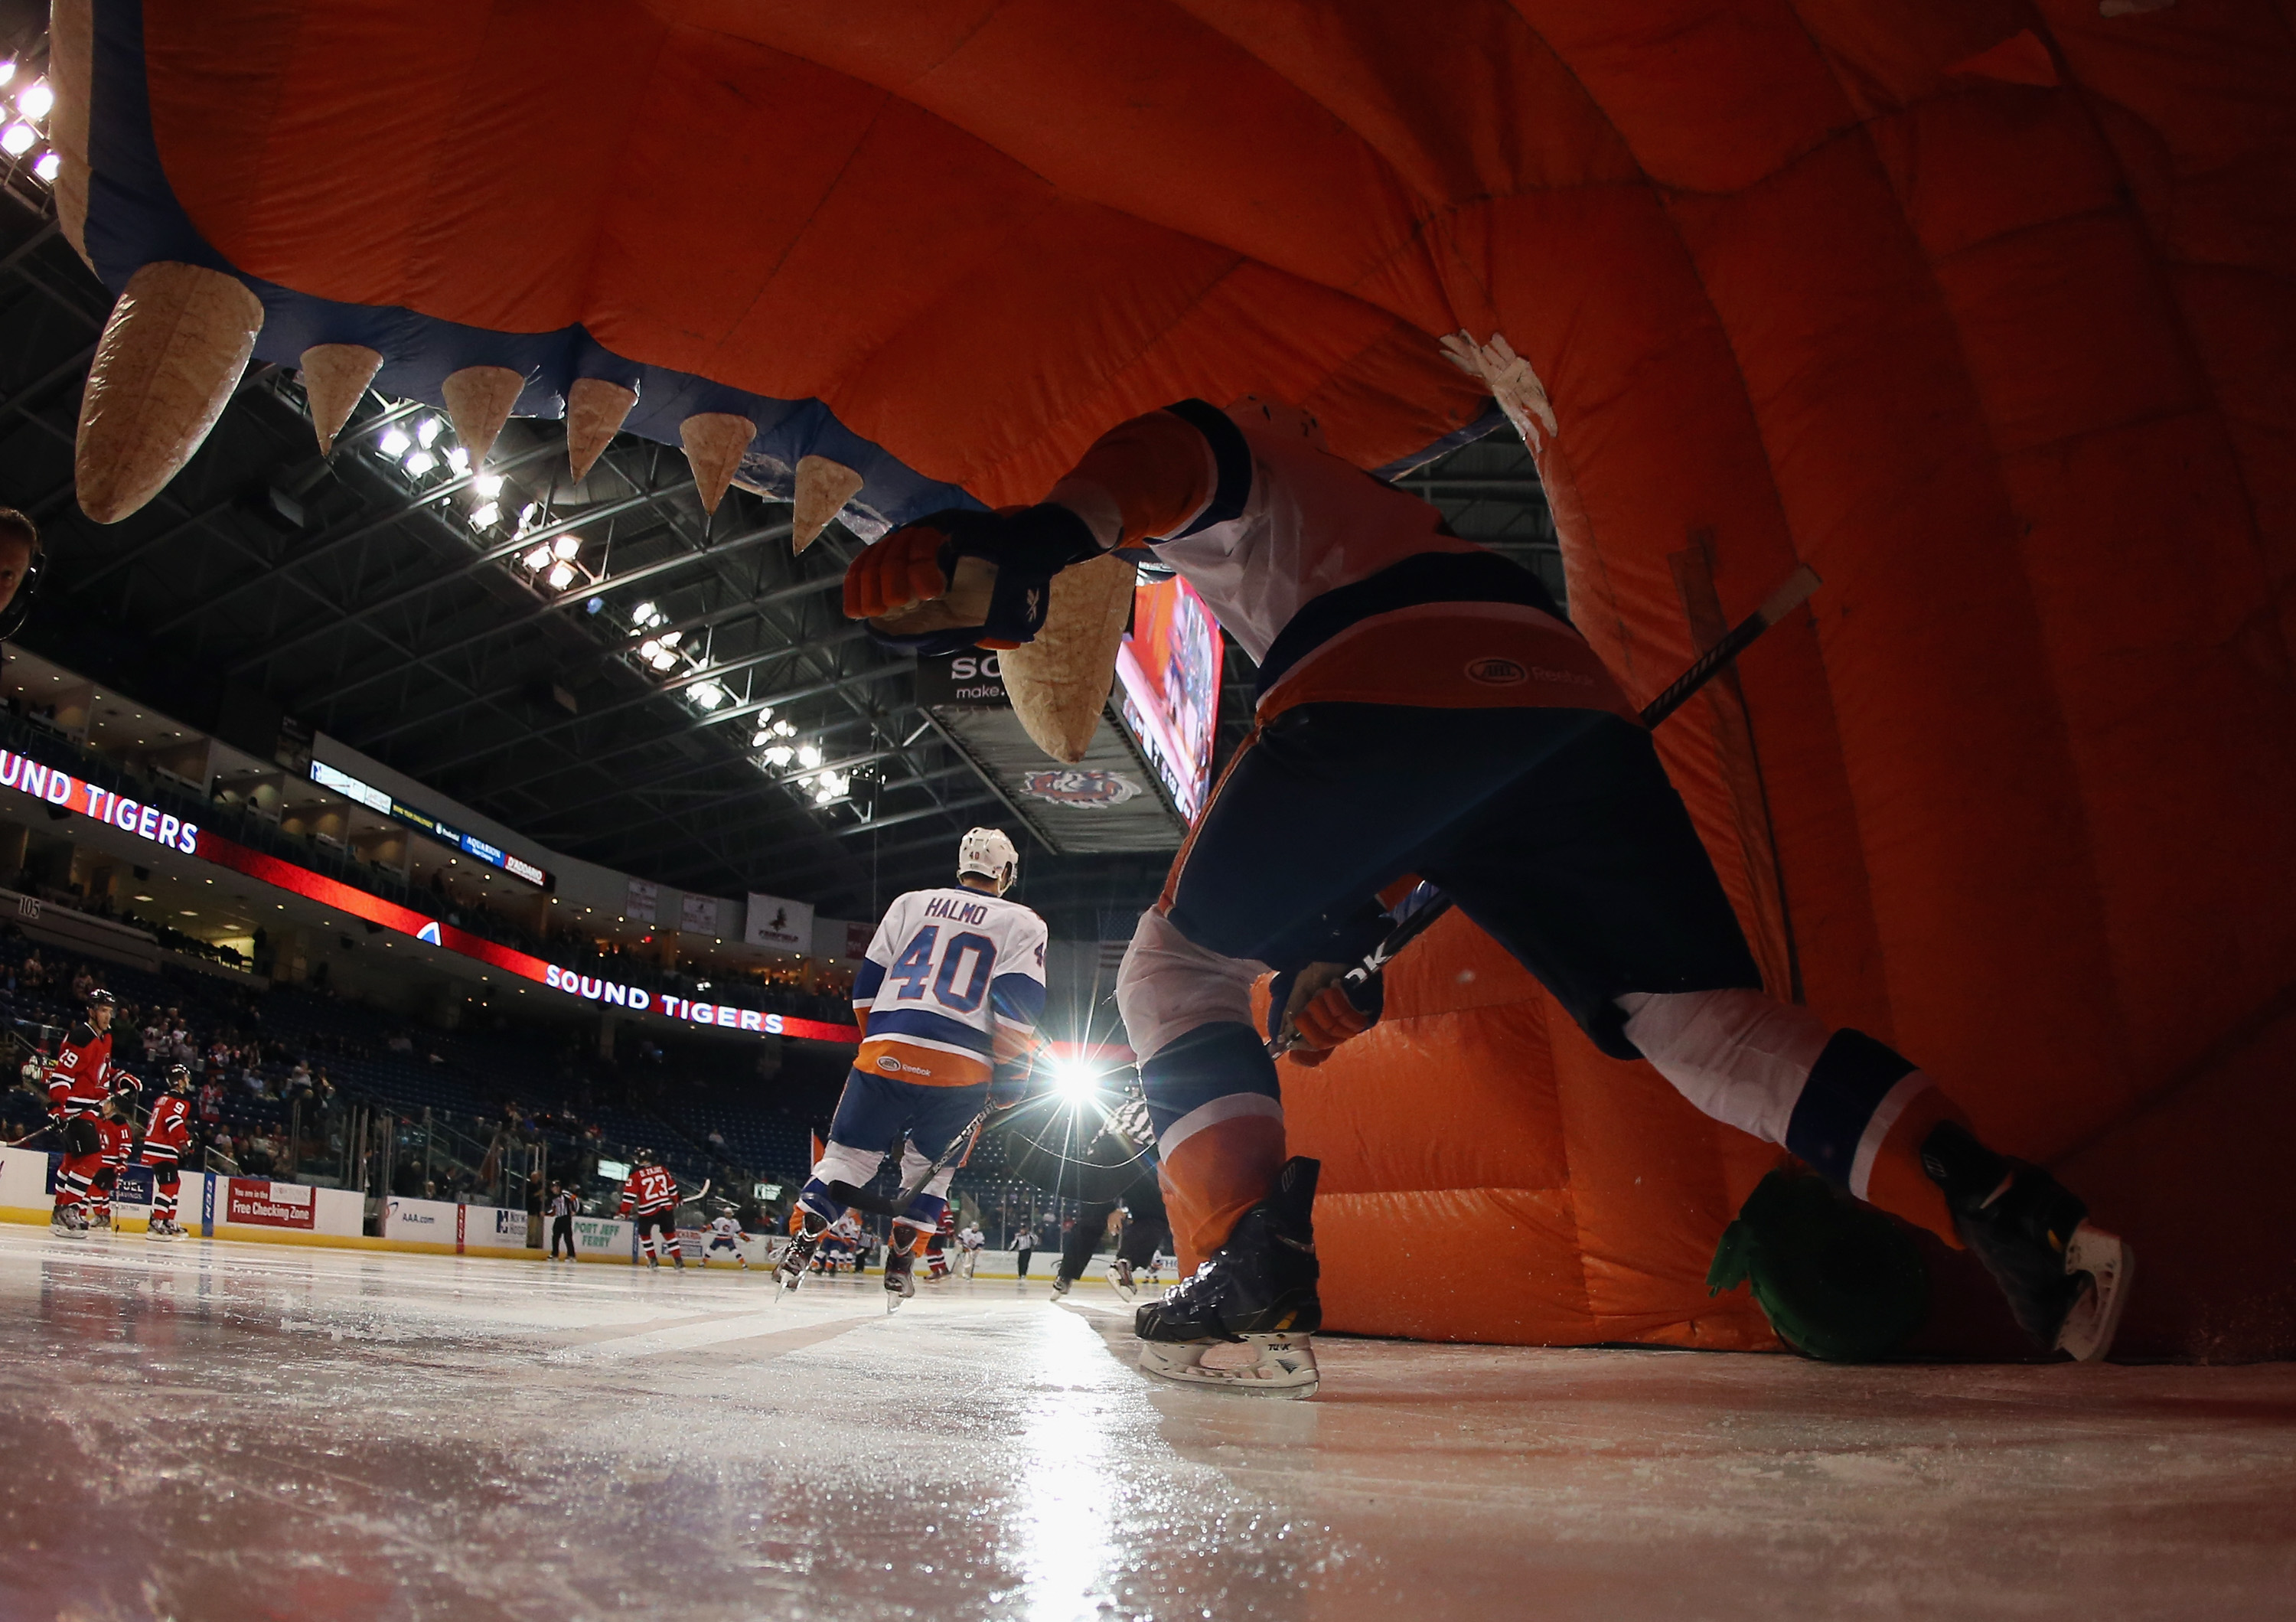 Negotiations Ongoing Between Sound Tigers and City of Bridgeport